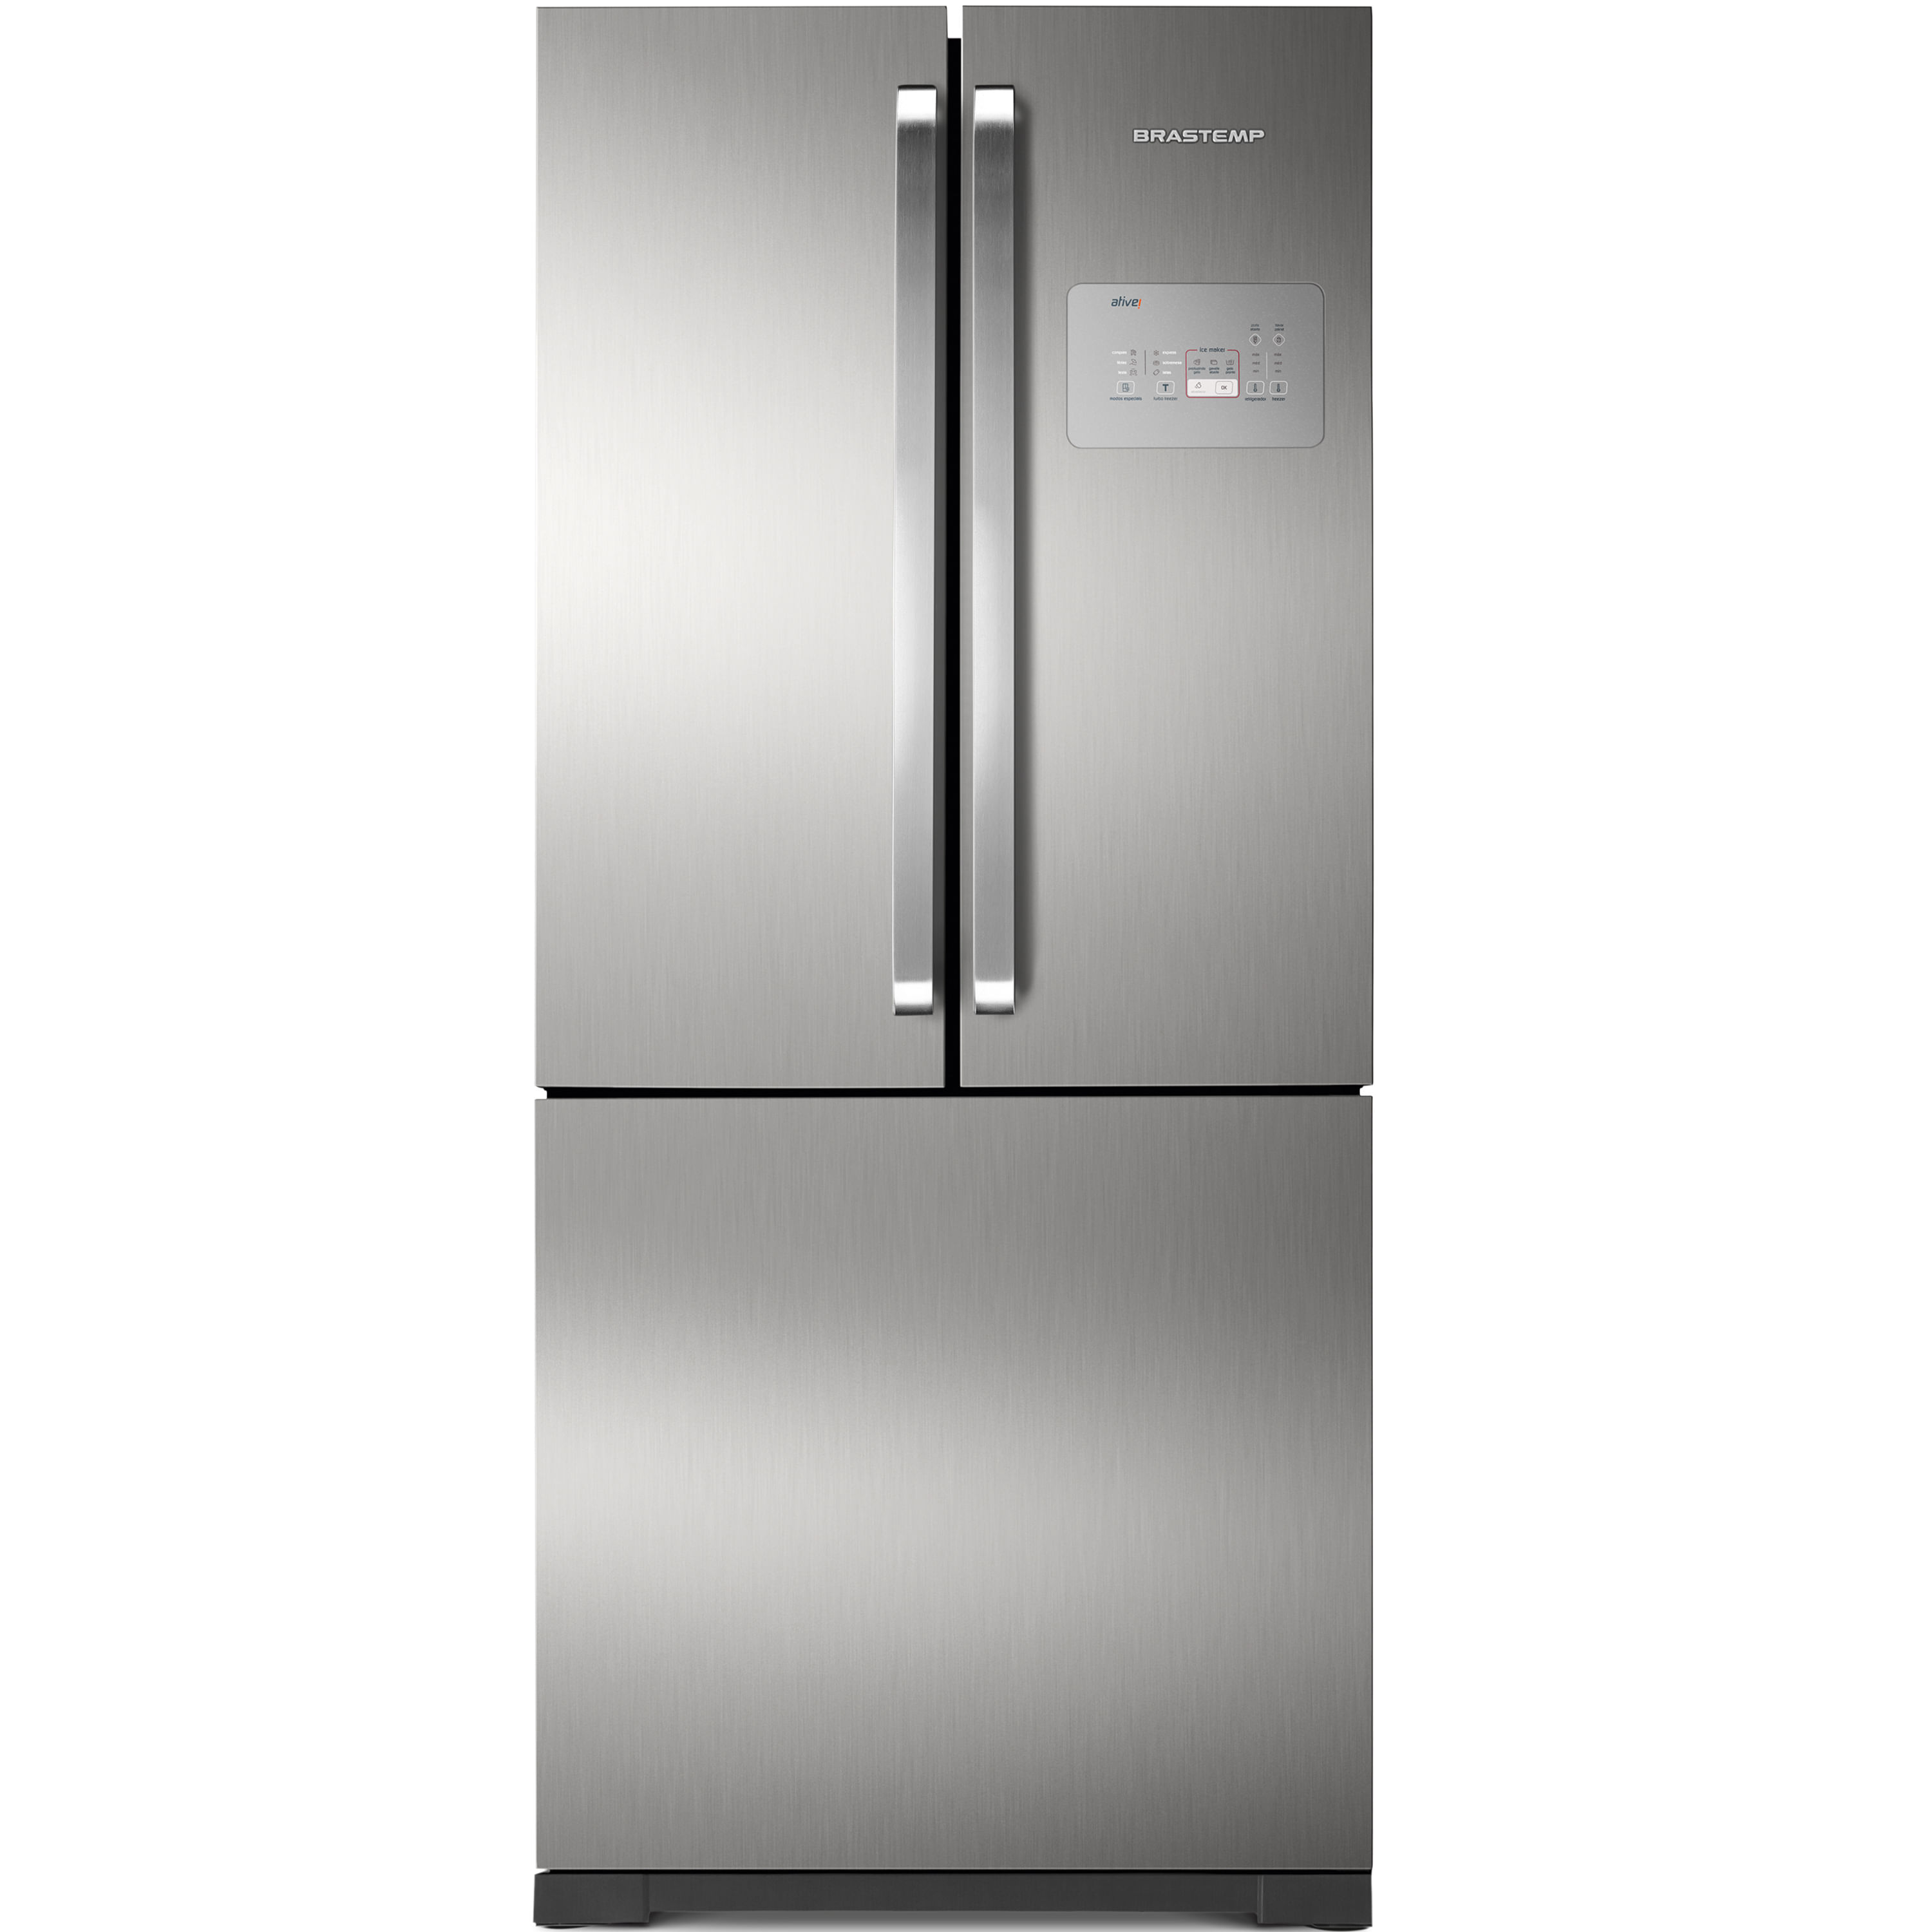 Geladeira Brastemp Frost Free Side Inverse 540 litros cor Inox com Ice Maker - Outlet - BRO80AK_OUT